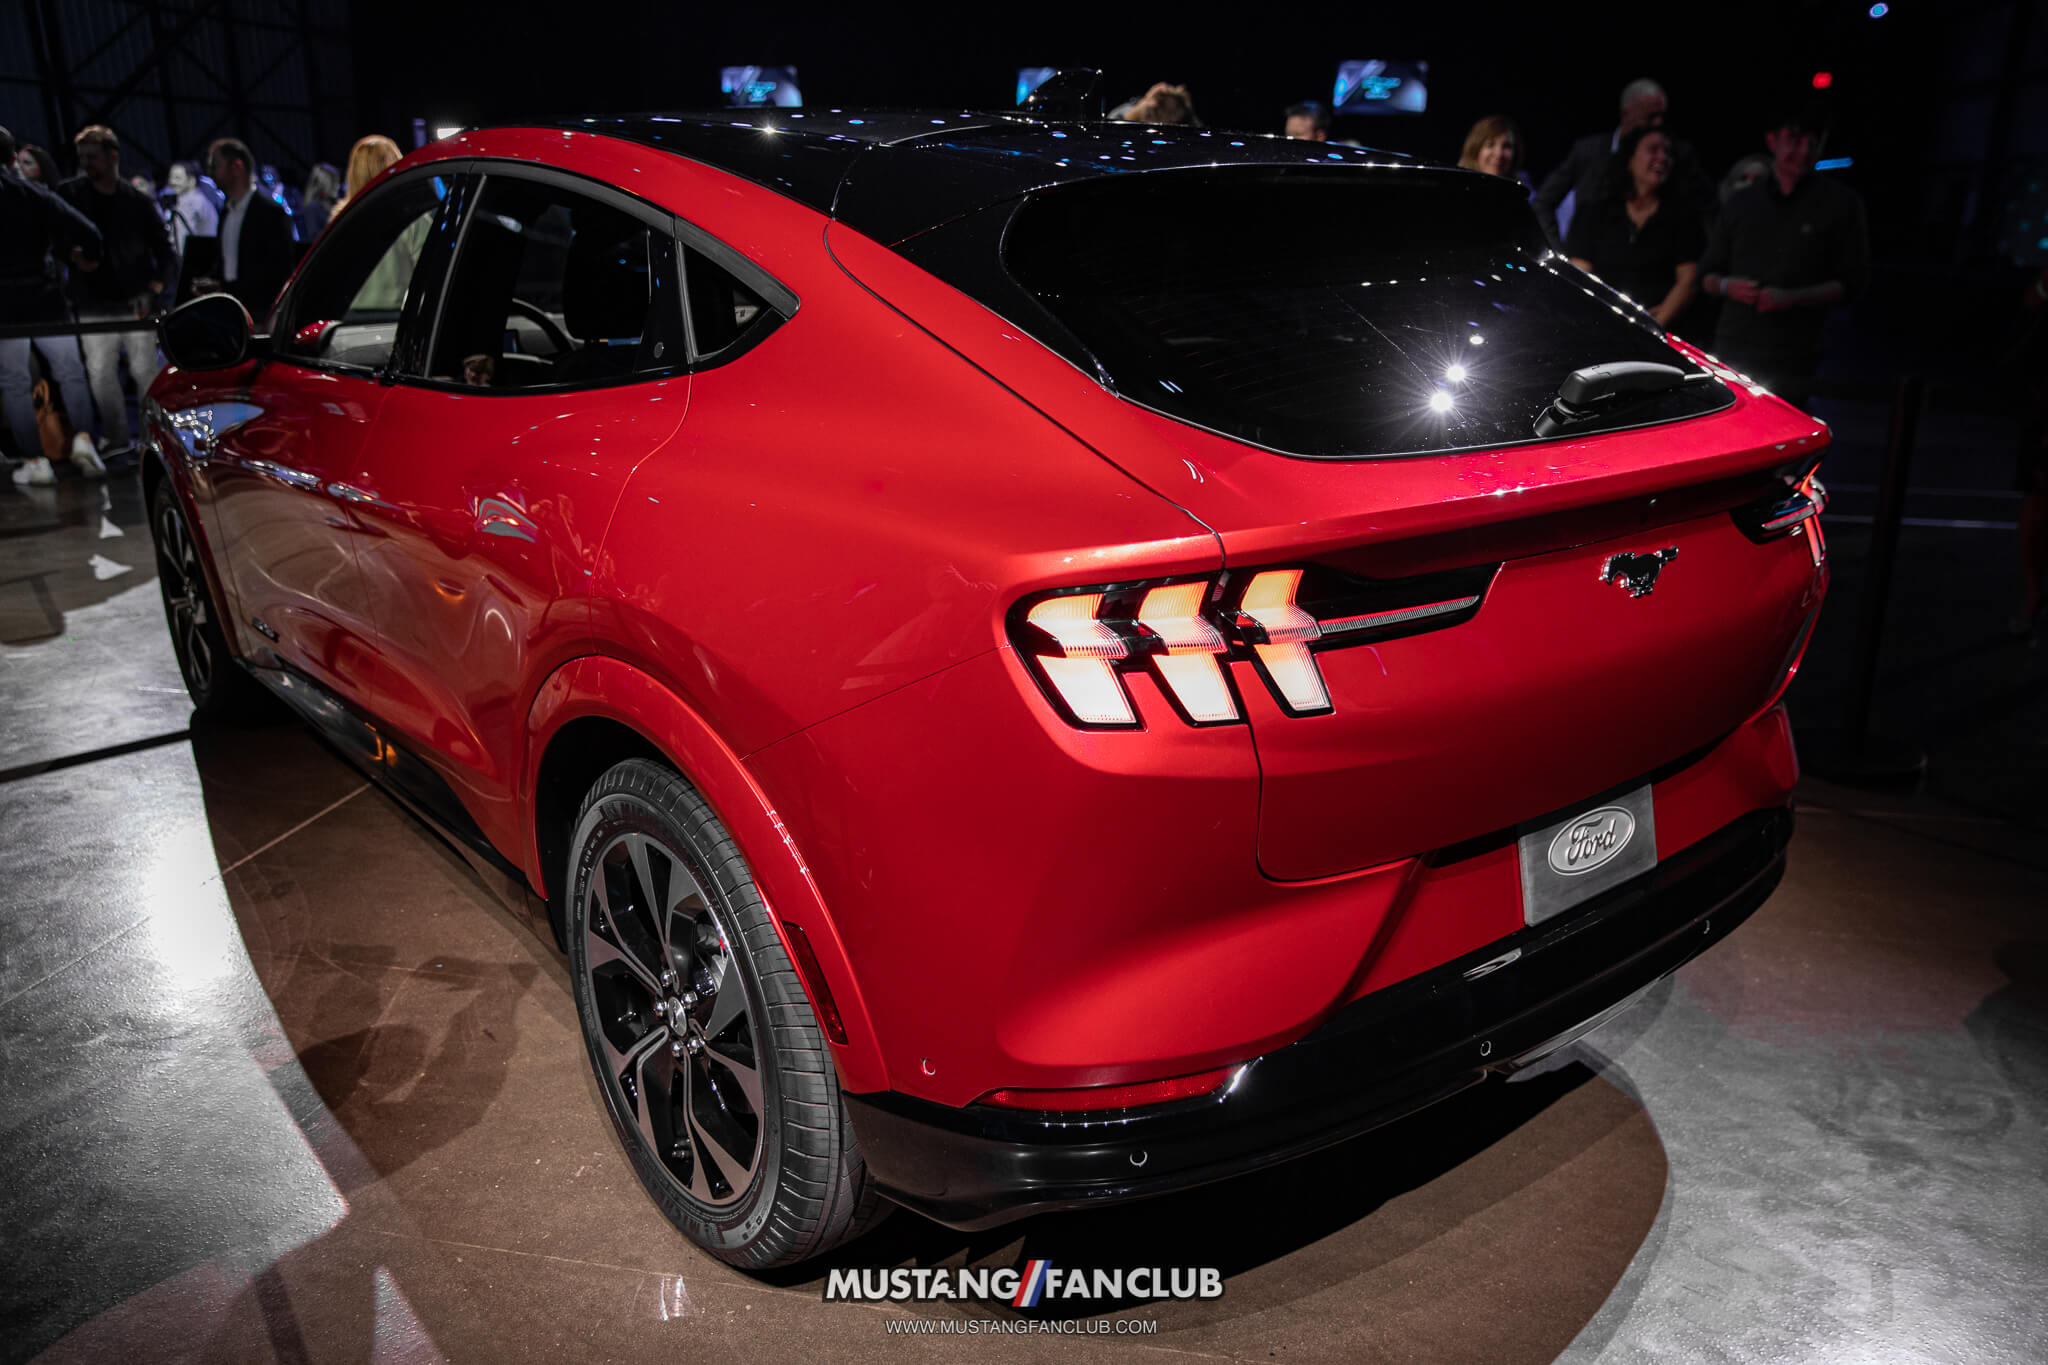 Rapid Red Mustang Mach E